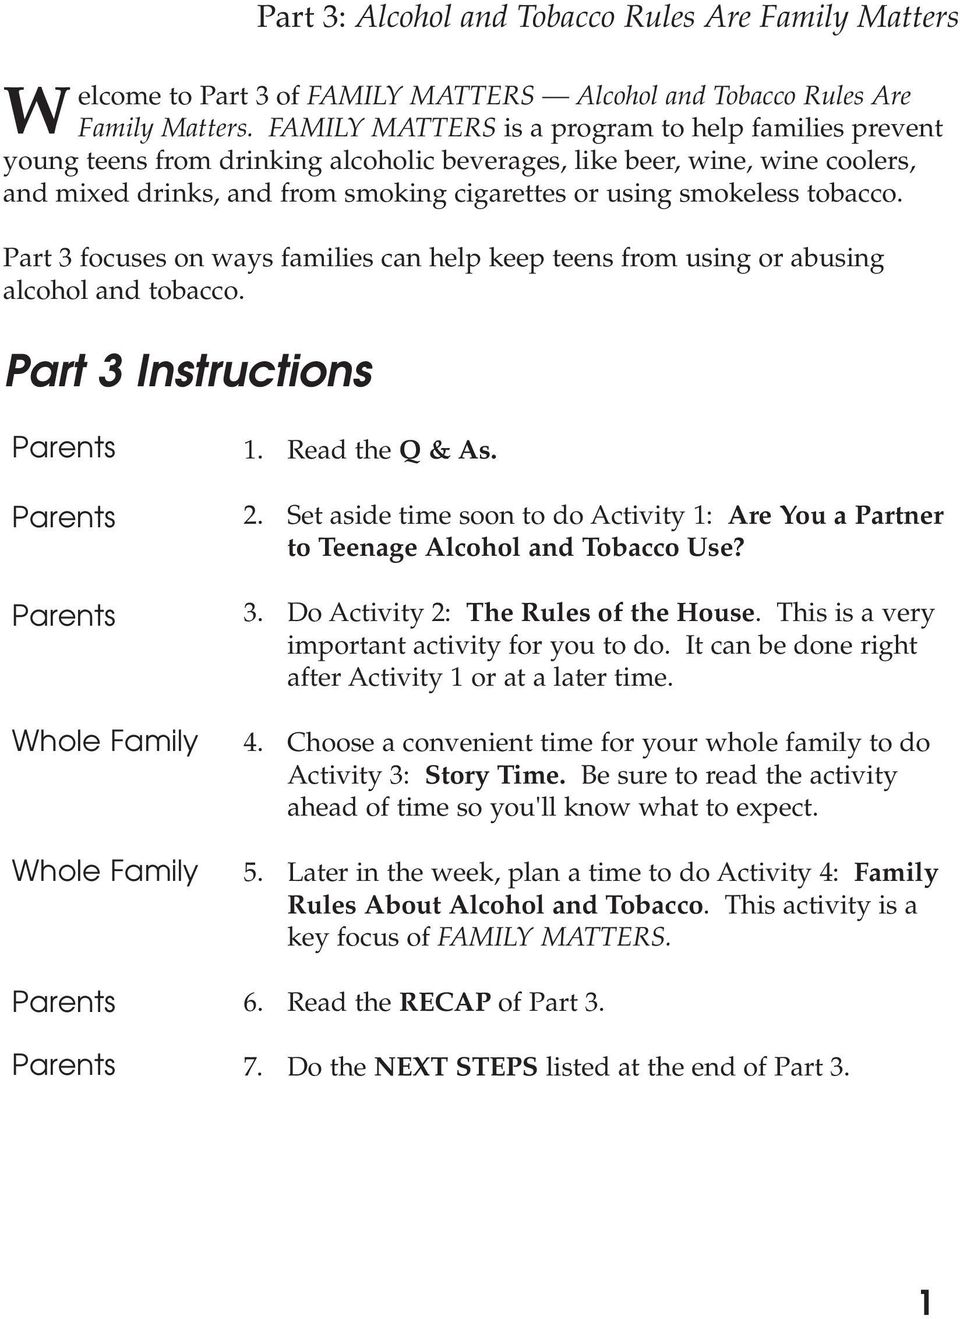 tobacco. Part 3 focuses on ways families can help keep teens from using or abusing alcohol and tobacco. Part 3 Instructions Parents Parents Parents Whole Family Whole Family Parents Parents 1.